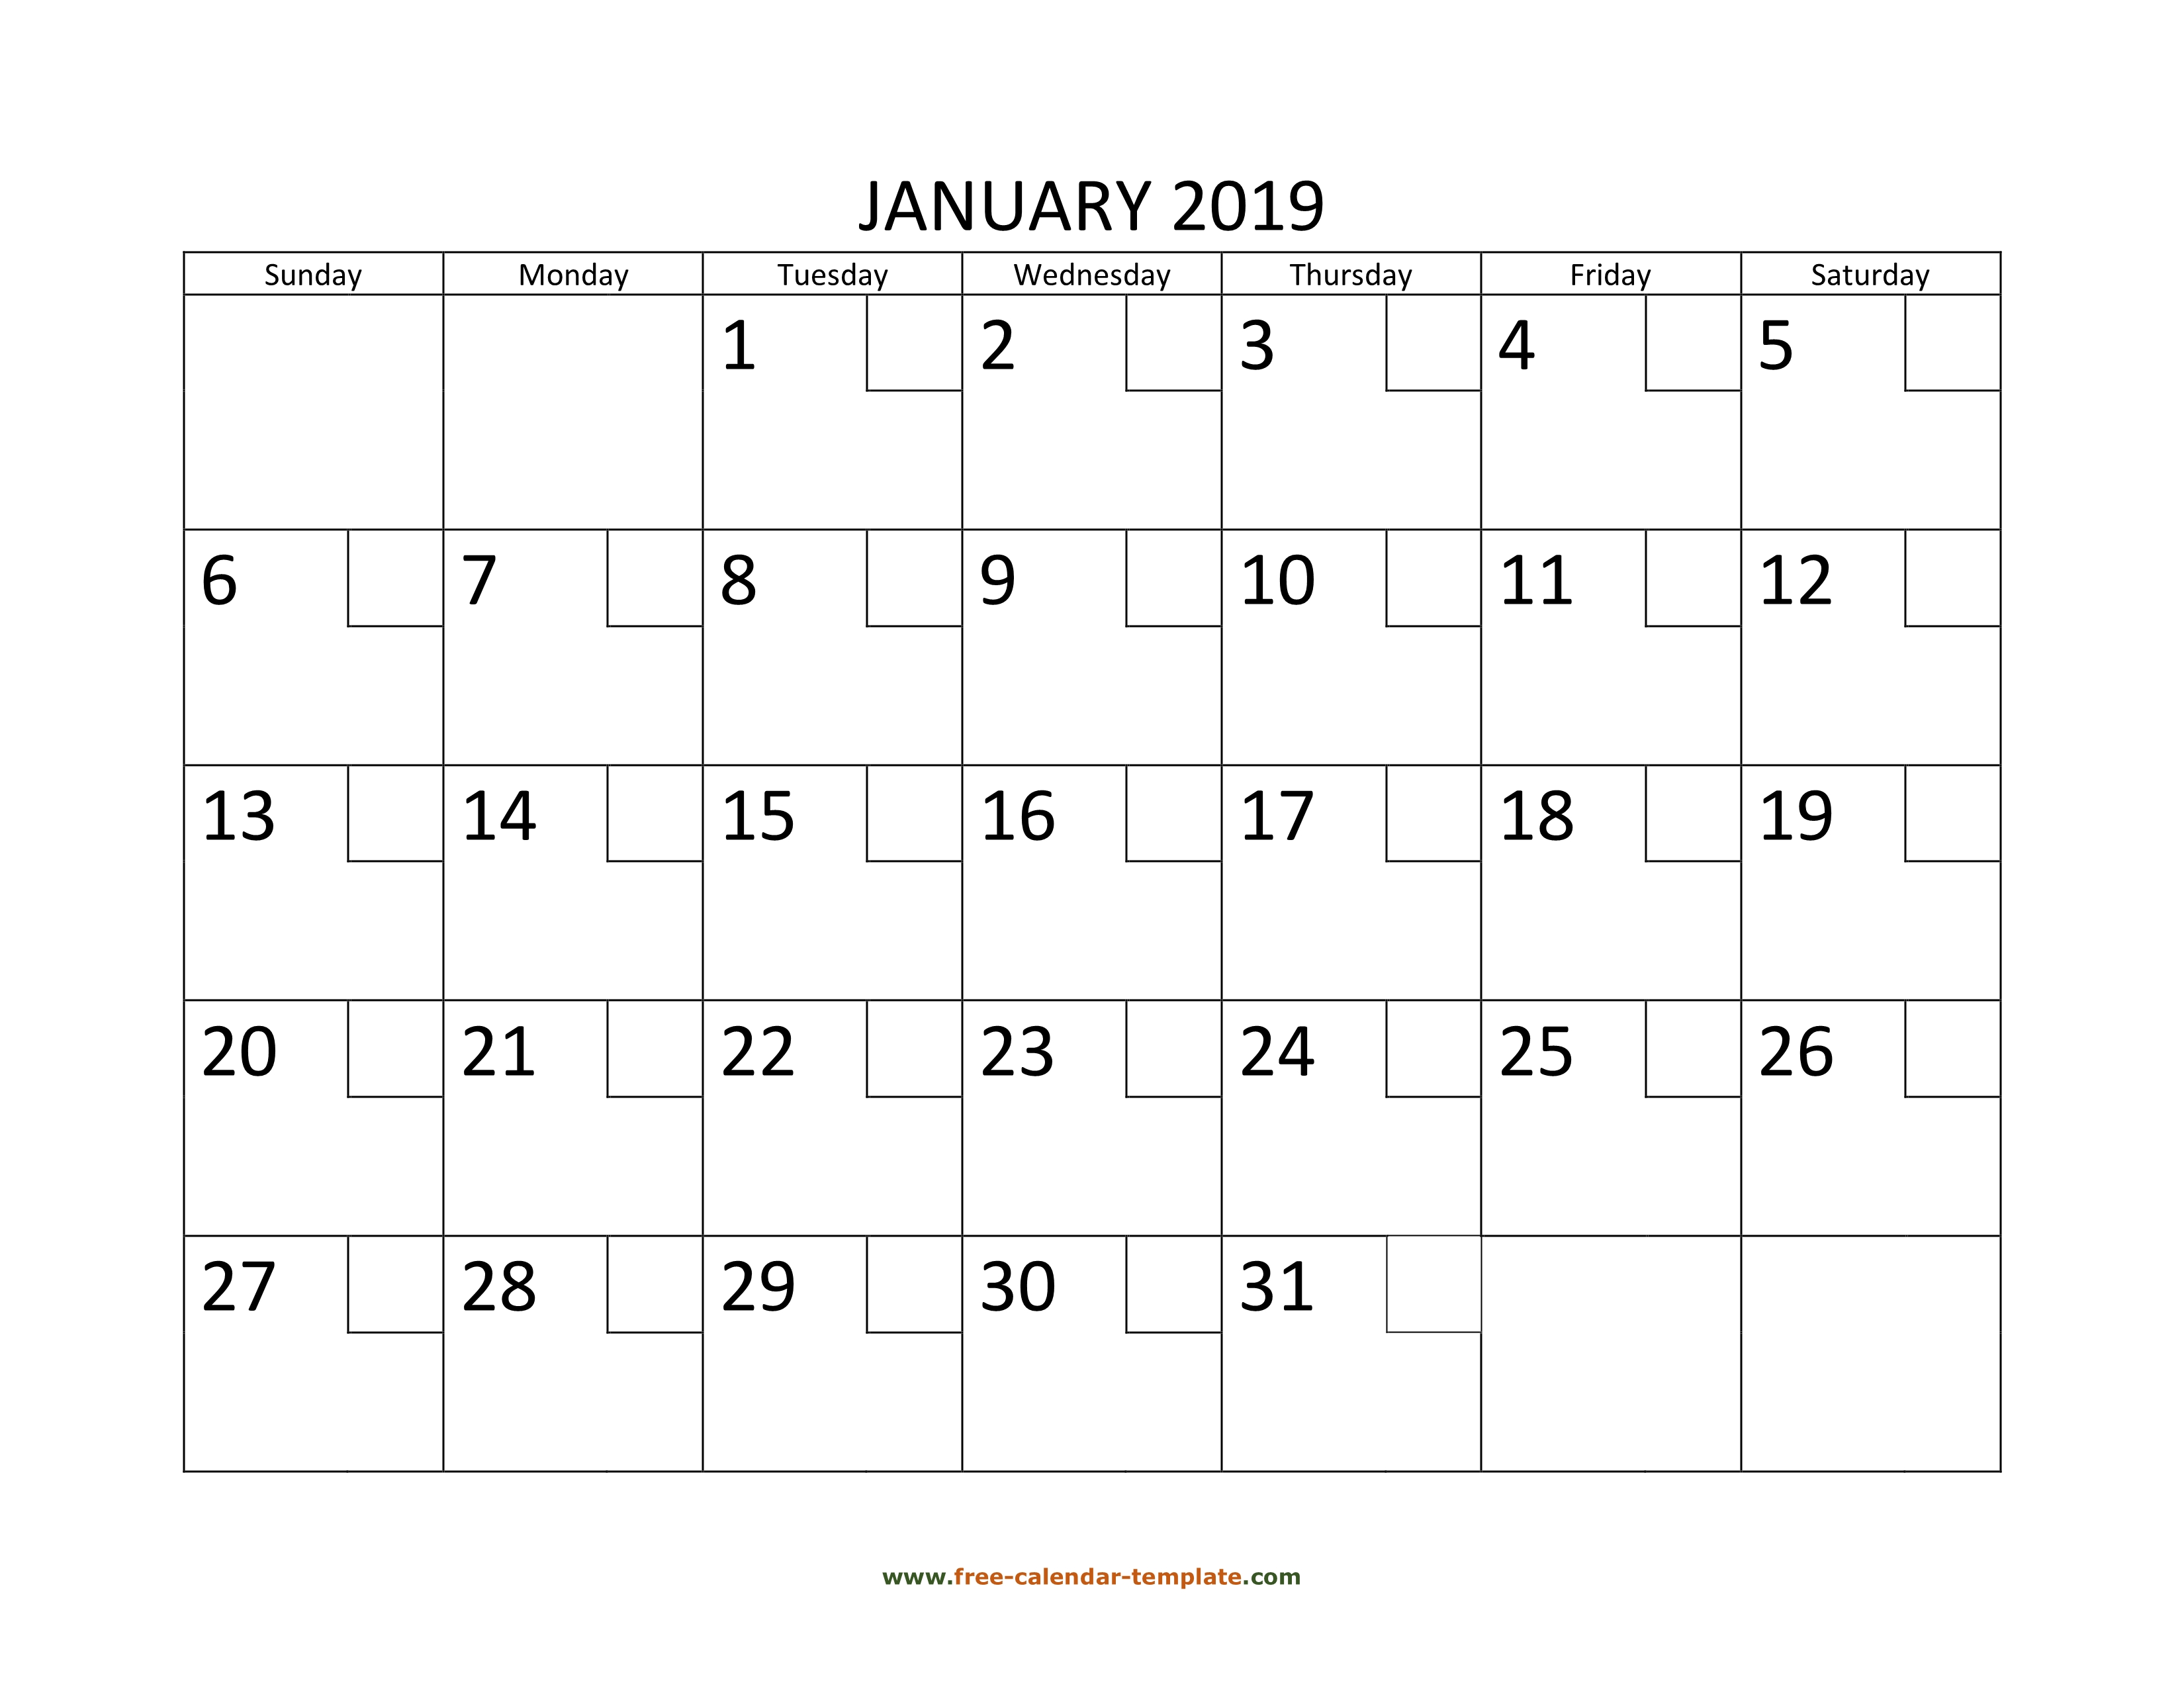 January Calendar 2019 Printable With Checkboxes Horizontal